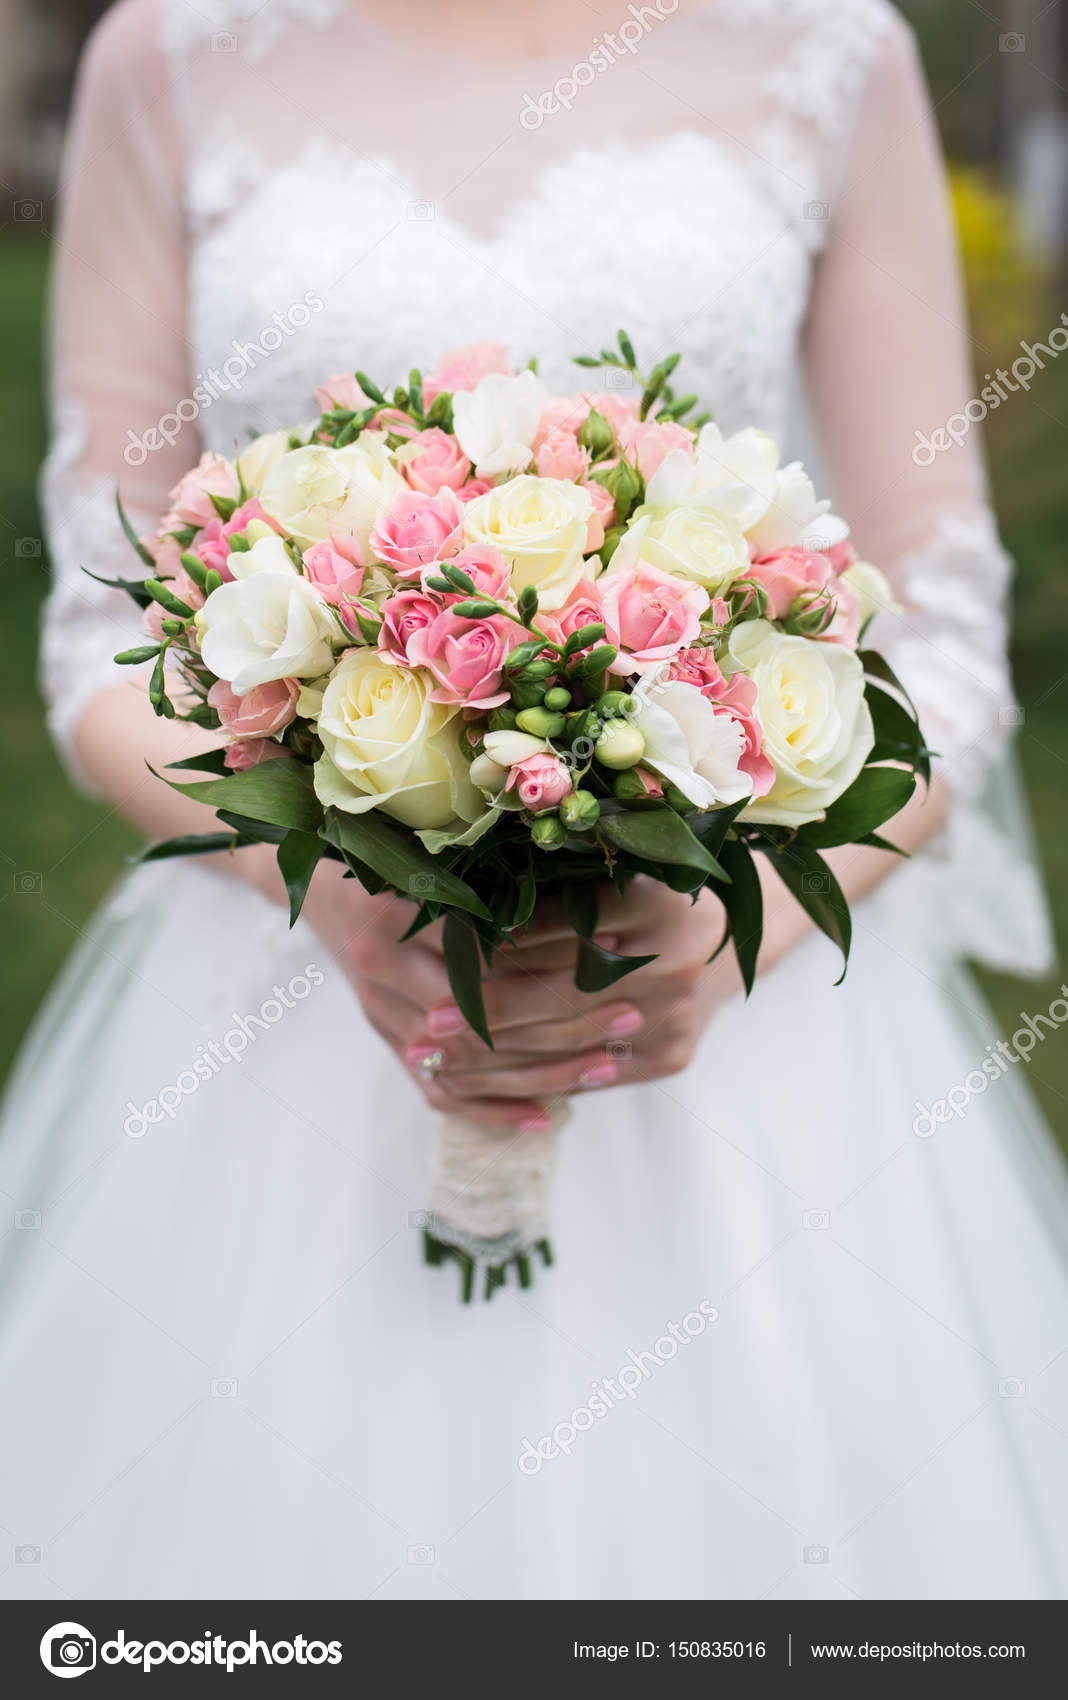 Bridal Bouquet With White And Pink Roses Wedding The Bride In